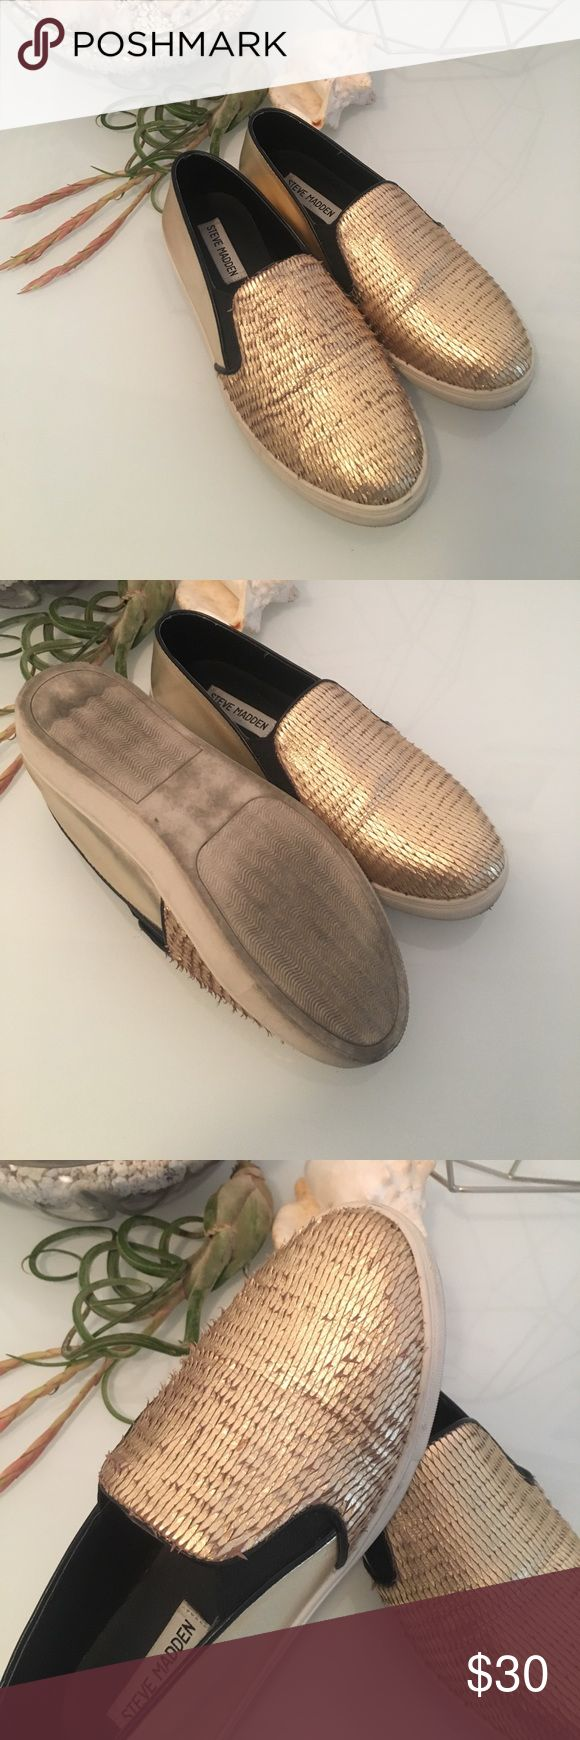 Gold textured slip on tennis shoe Worn twice, very cute metallic shoe Steve Madden Shoes Athletic Shoes